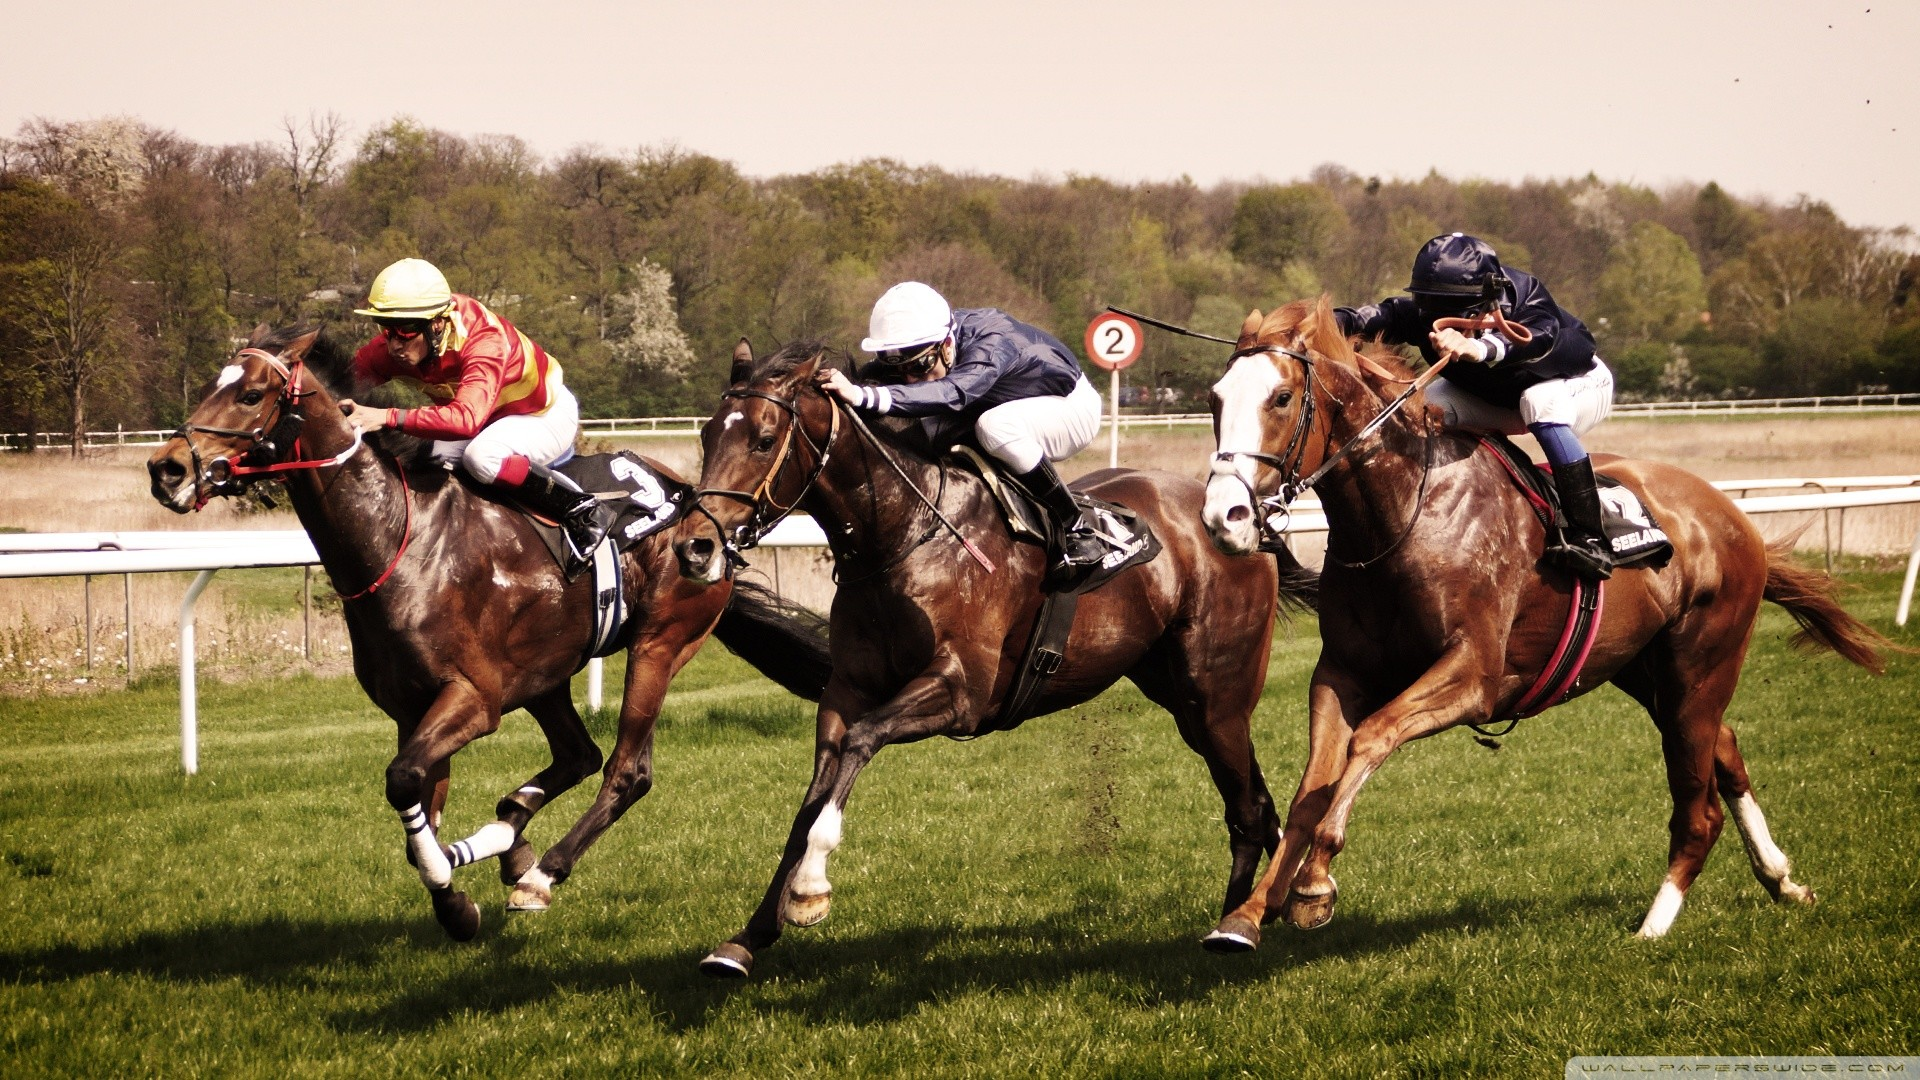 horse racing wallpaper,horse,animal sports,sports,bridle,rein